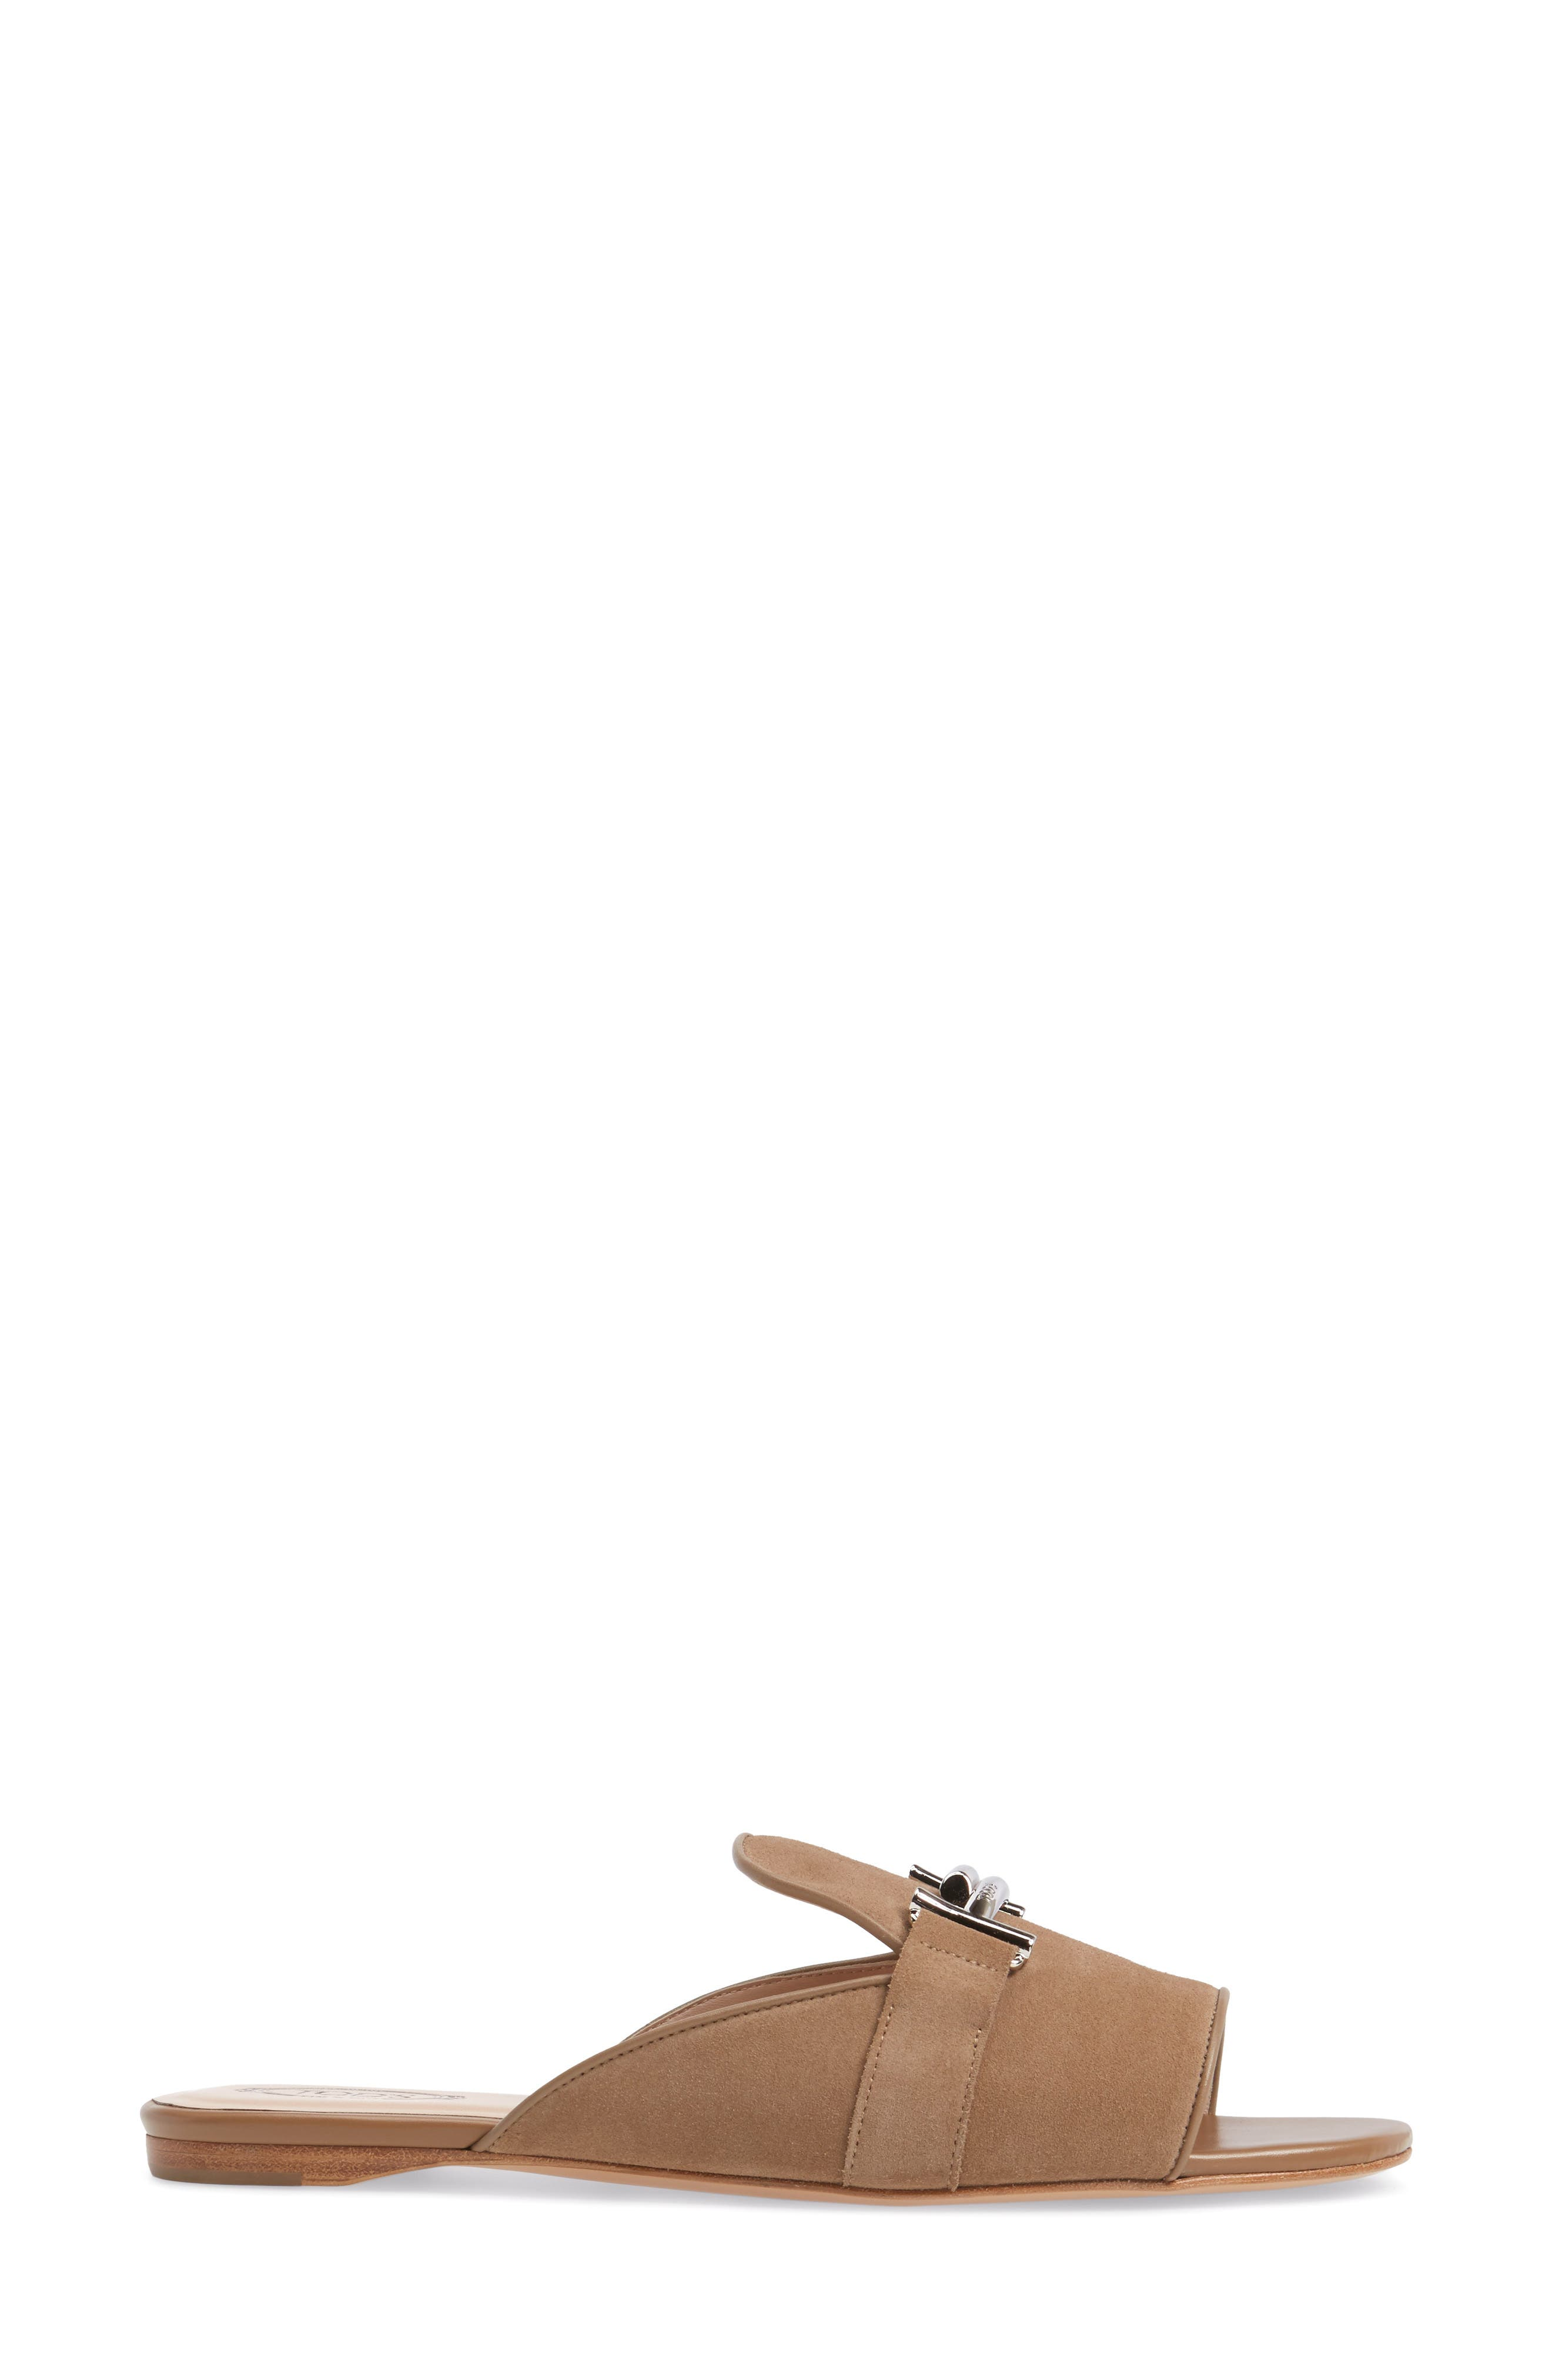 Double T Open Toe Loafer Mule,                             Alternate thumbnail 3, color,                             Tan